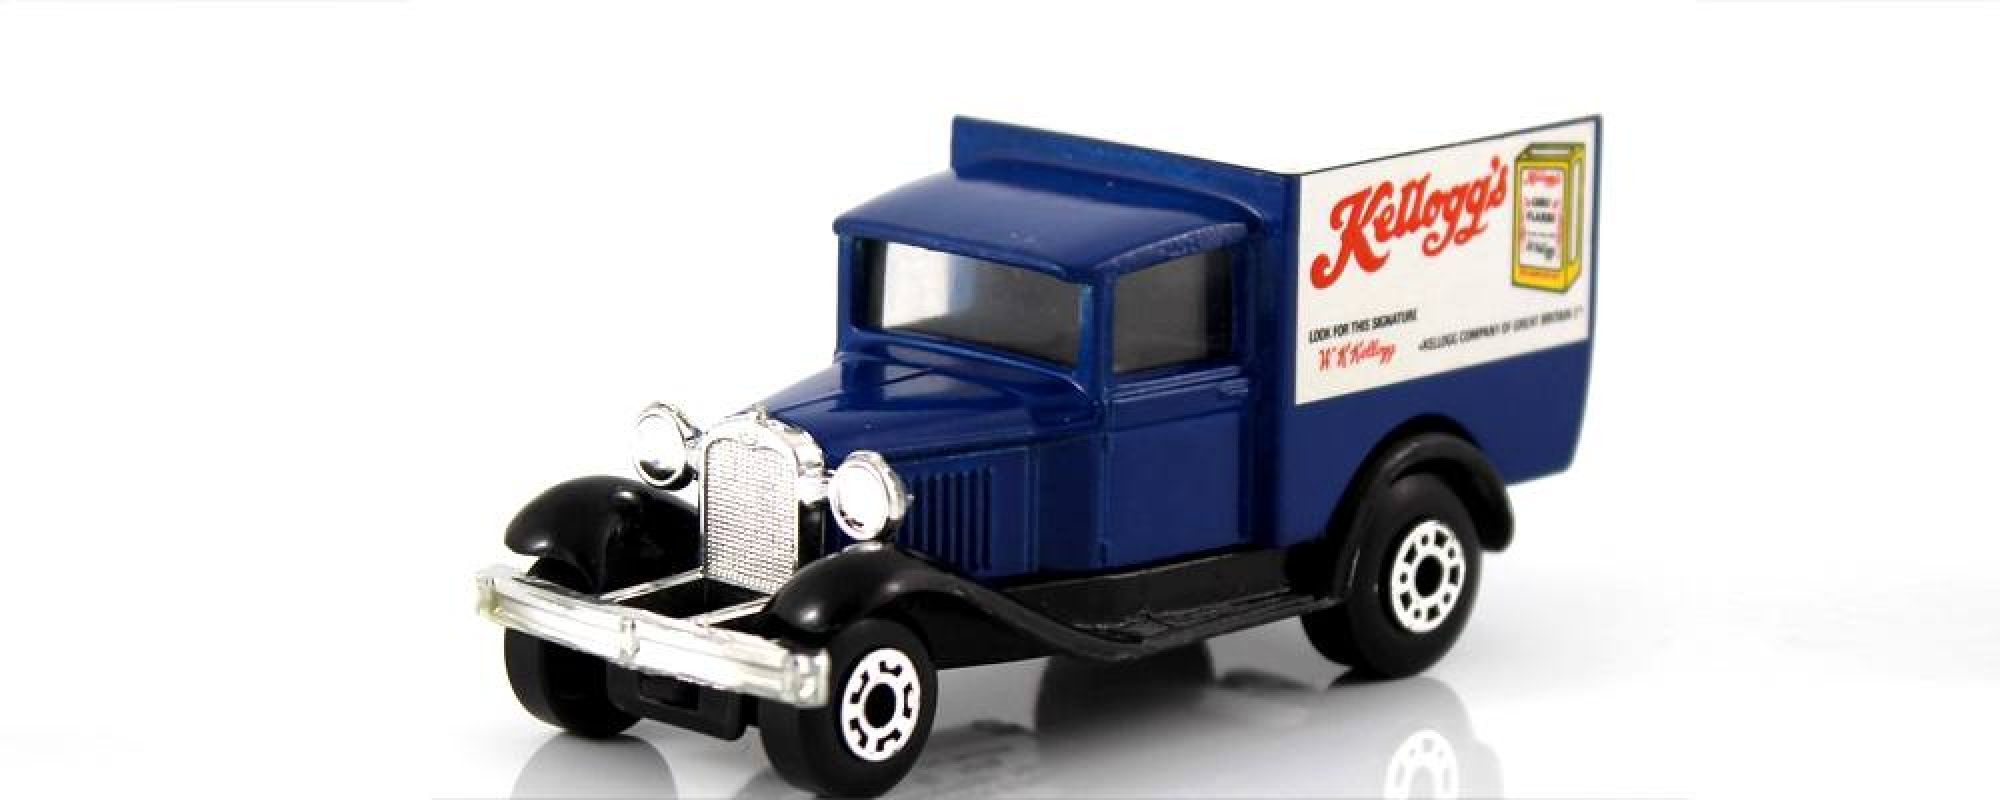 Kelloggs Promotional Vehicle - Classic Car